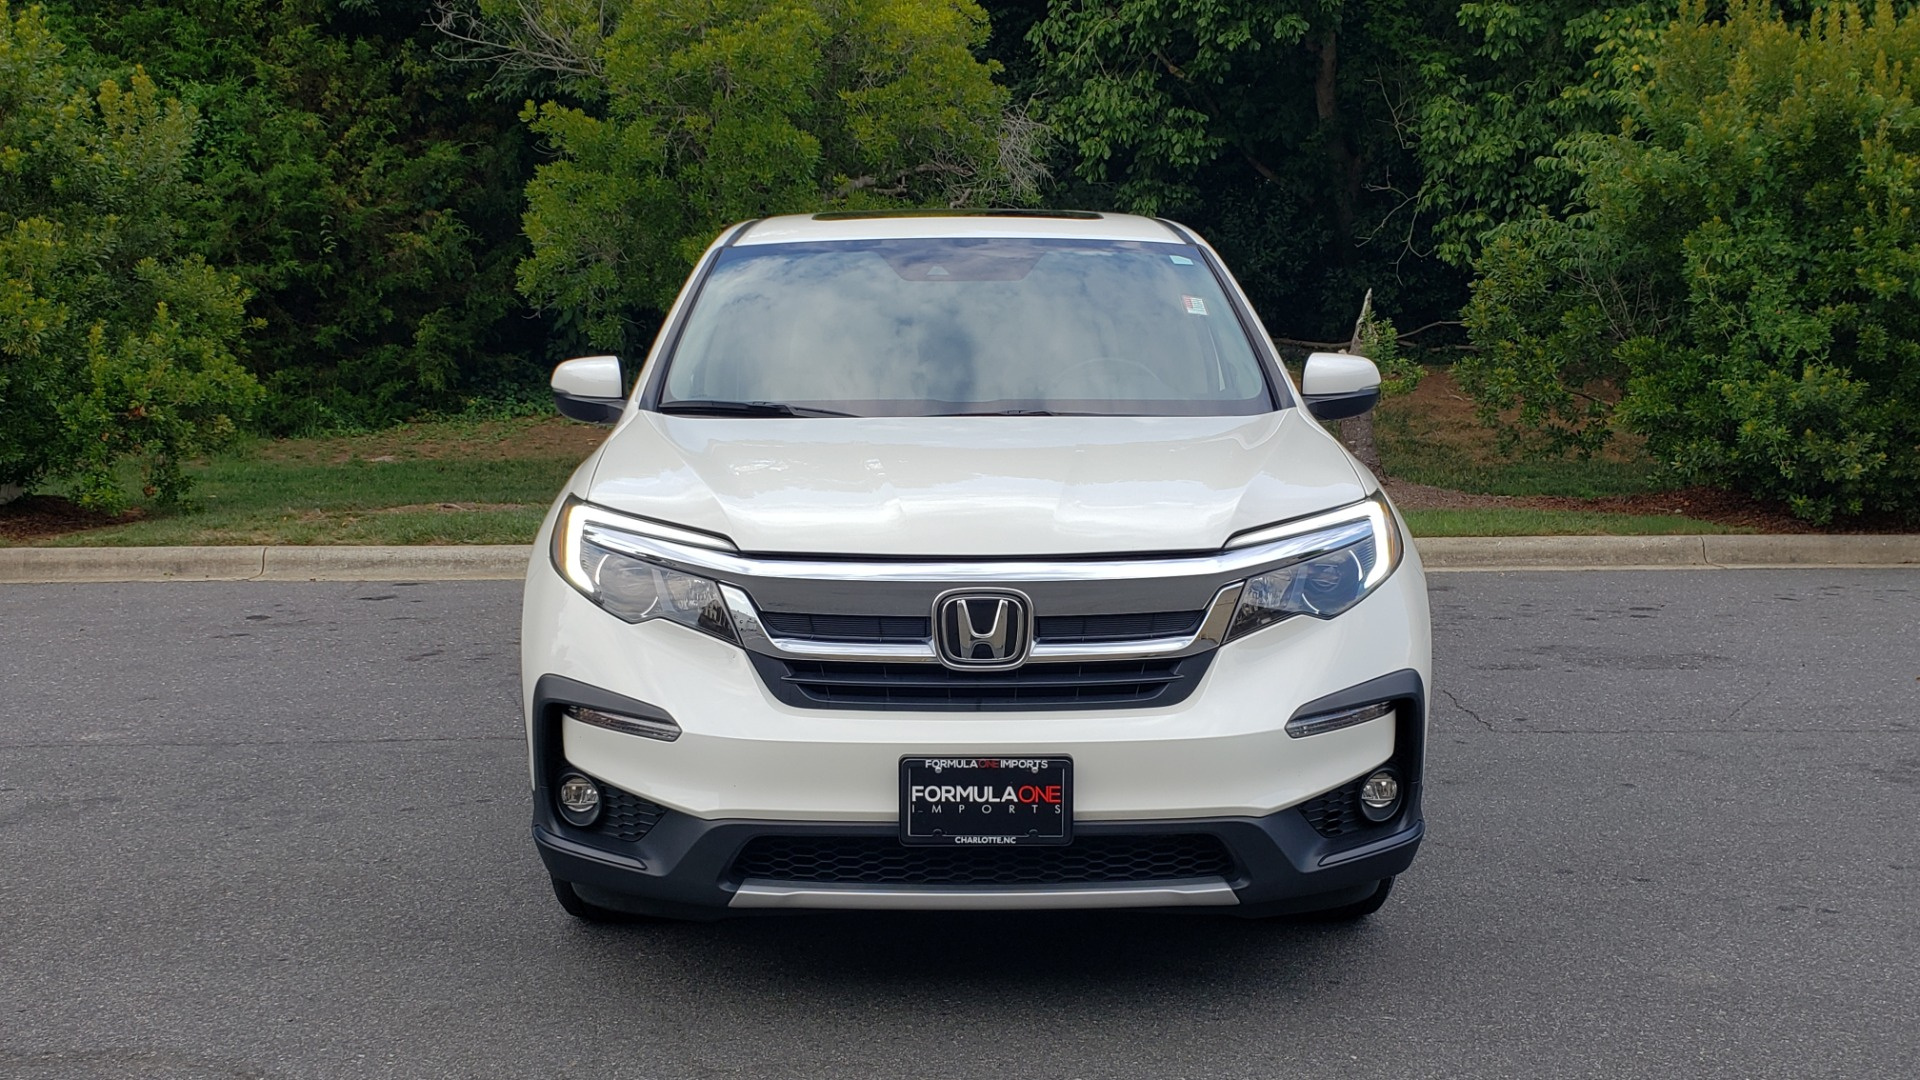 Used 2019 Honda PILOT EX-L / V6 / NAV / SUNROOF / DVD / 3-ROW / REARVIEW for sale Sold at Formula Imports in Charlotte NC 28227 23